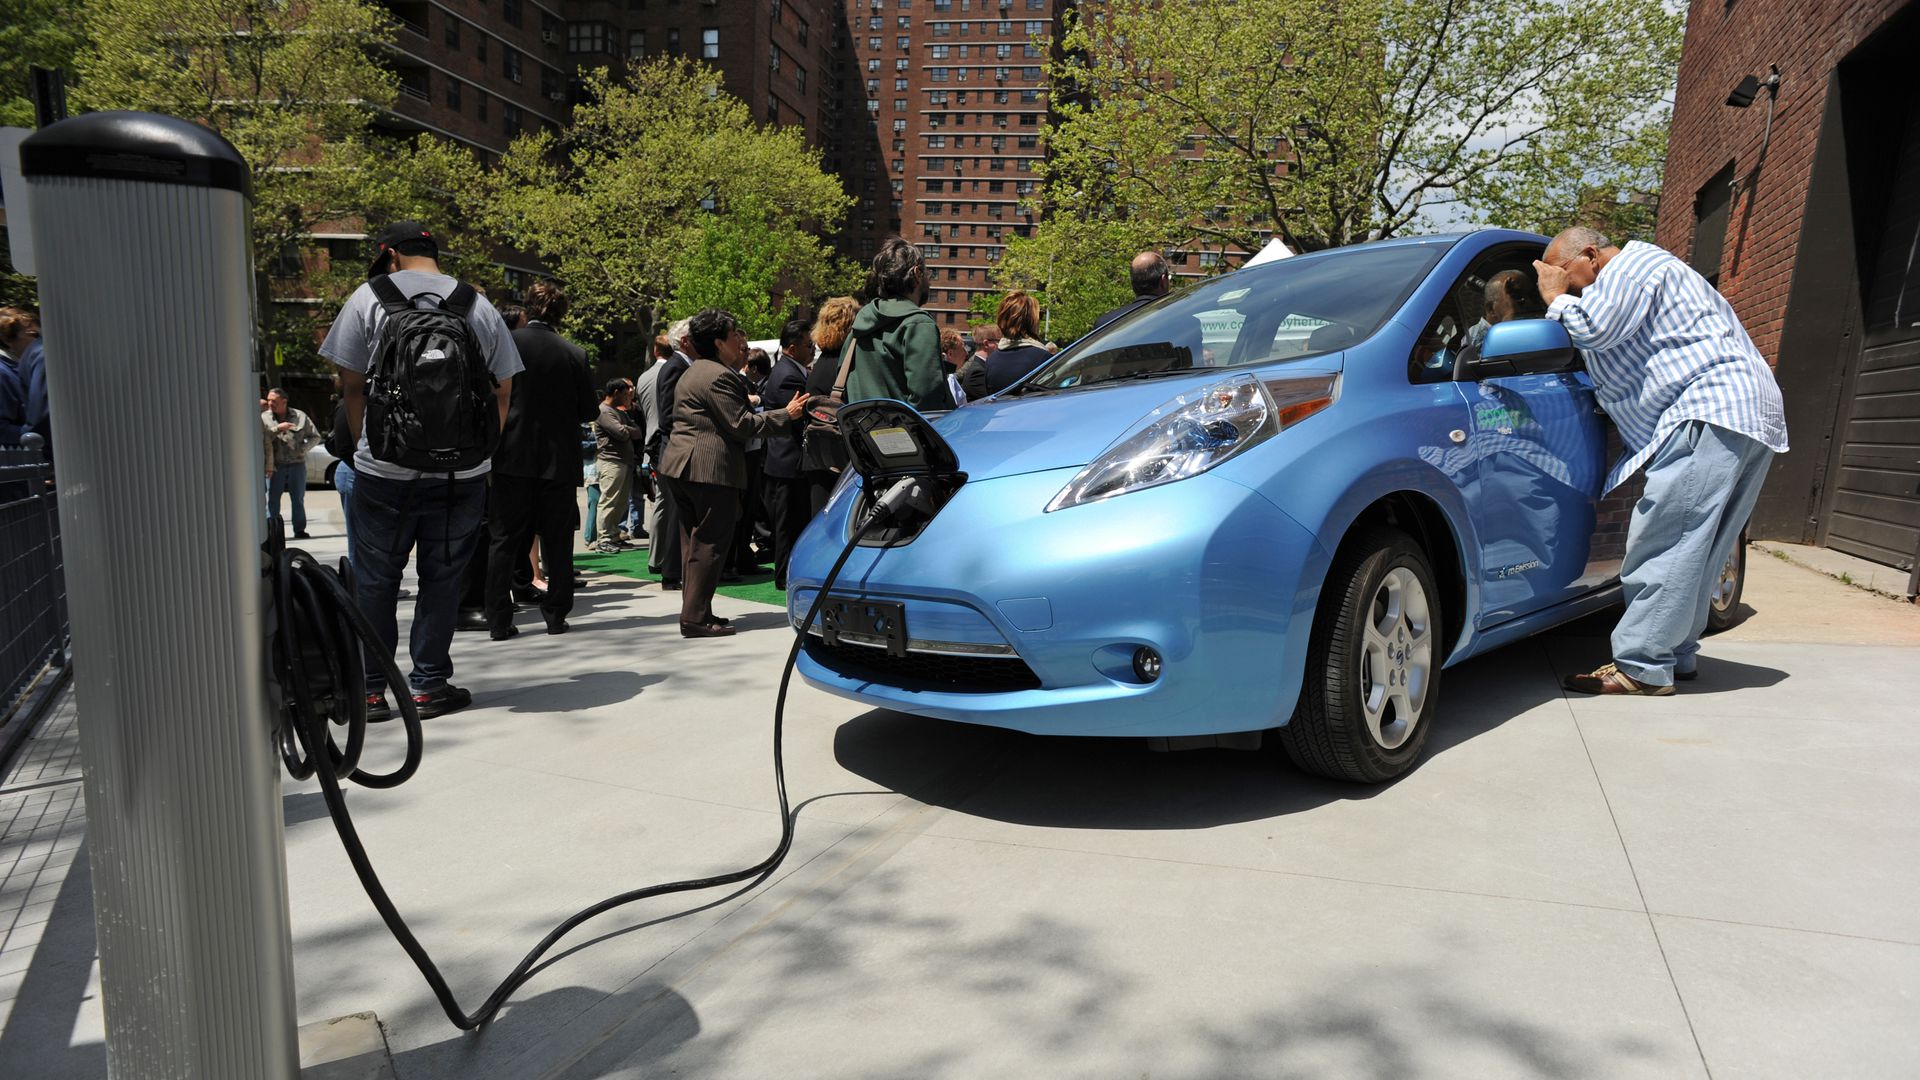 A man looks into a Nissan Leaf electric car t on the Lower East Side of Manhattan May 6, 2011 in New York.